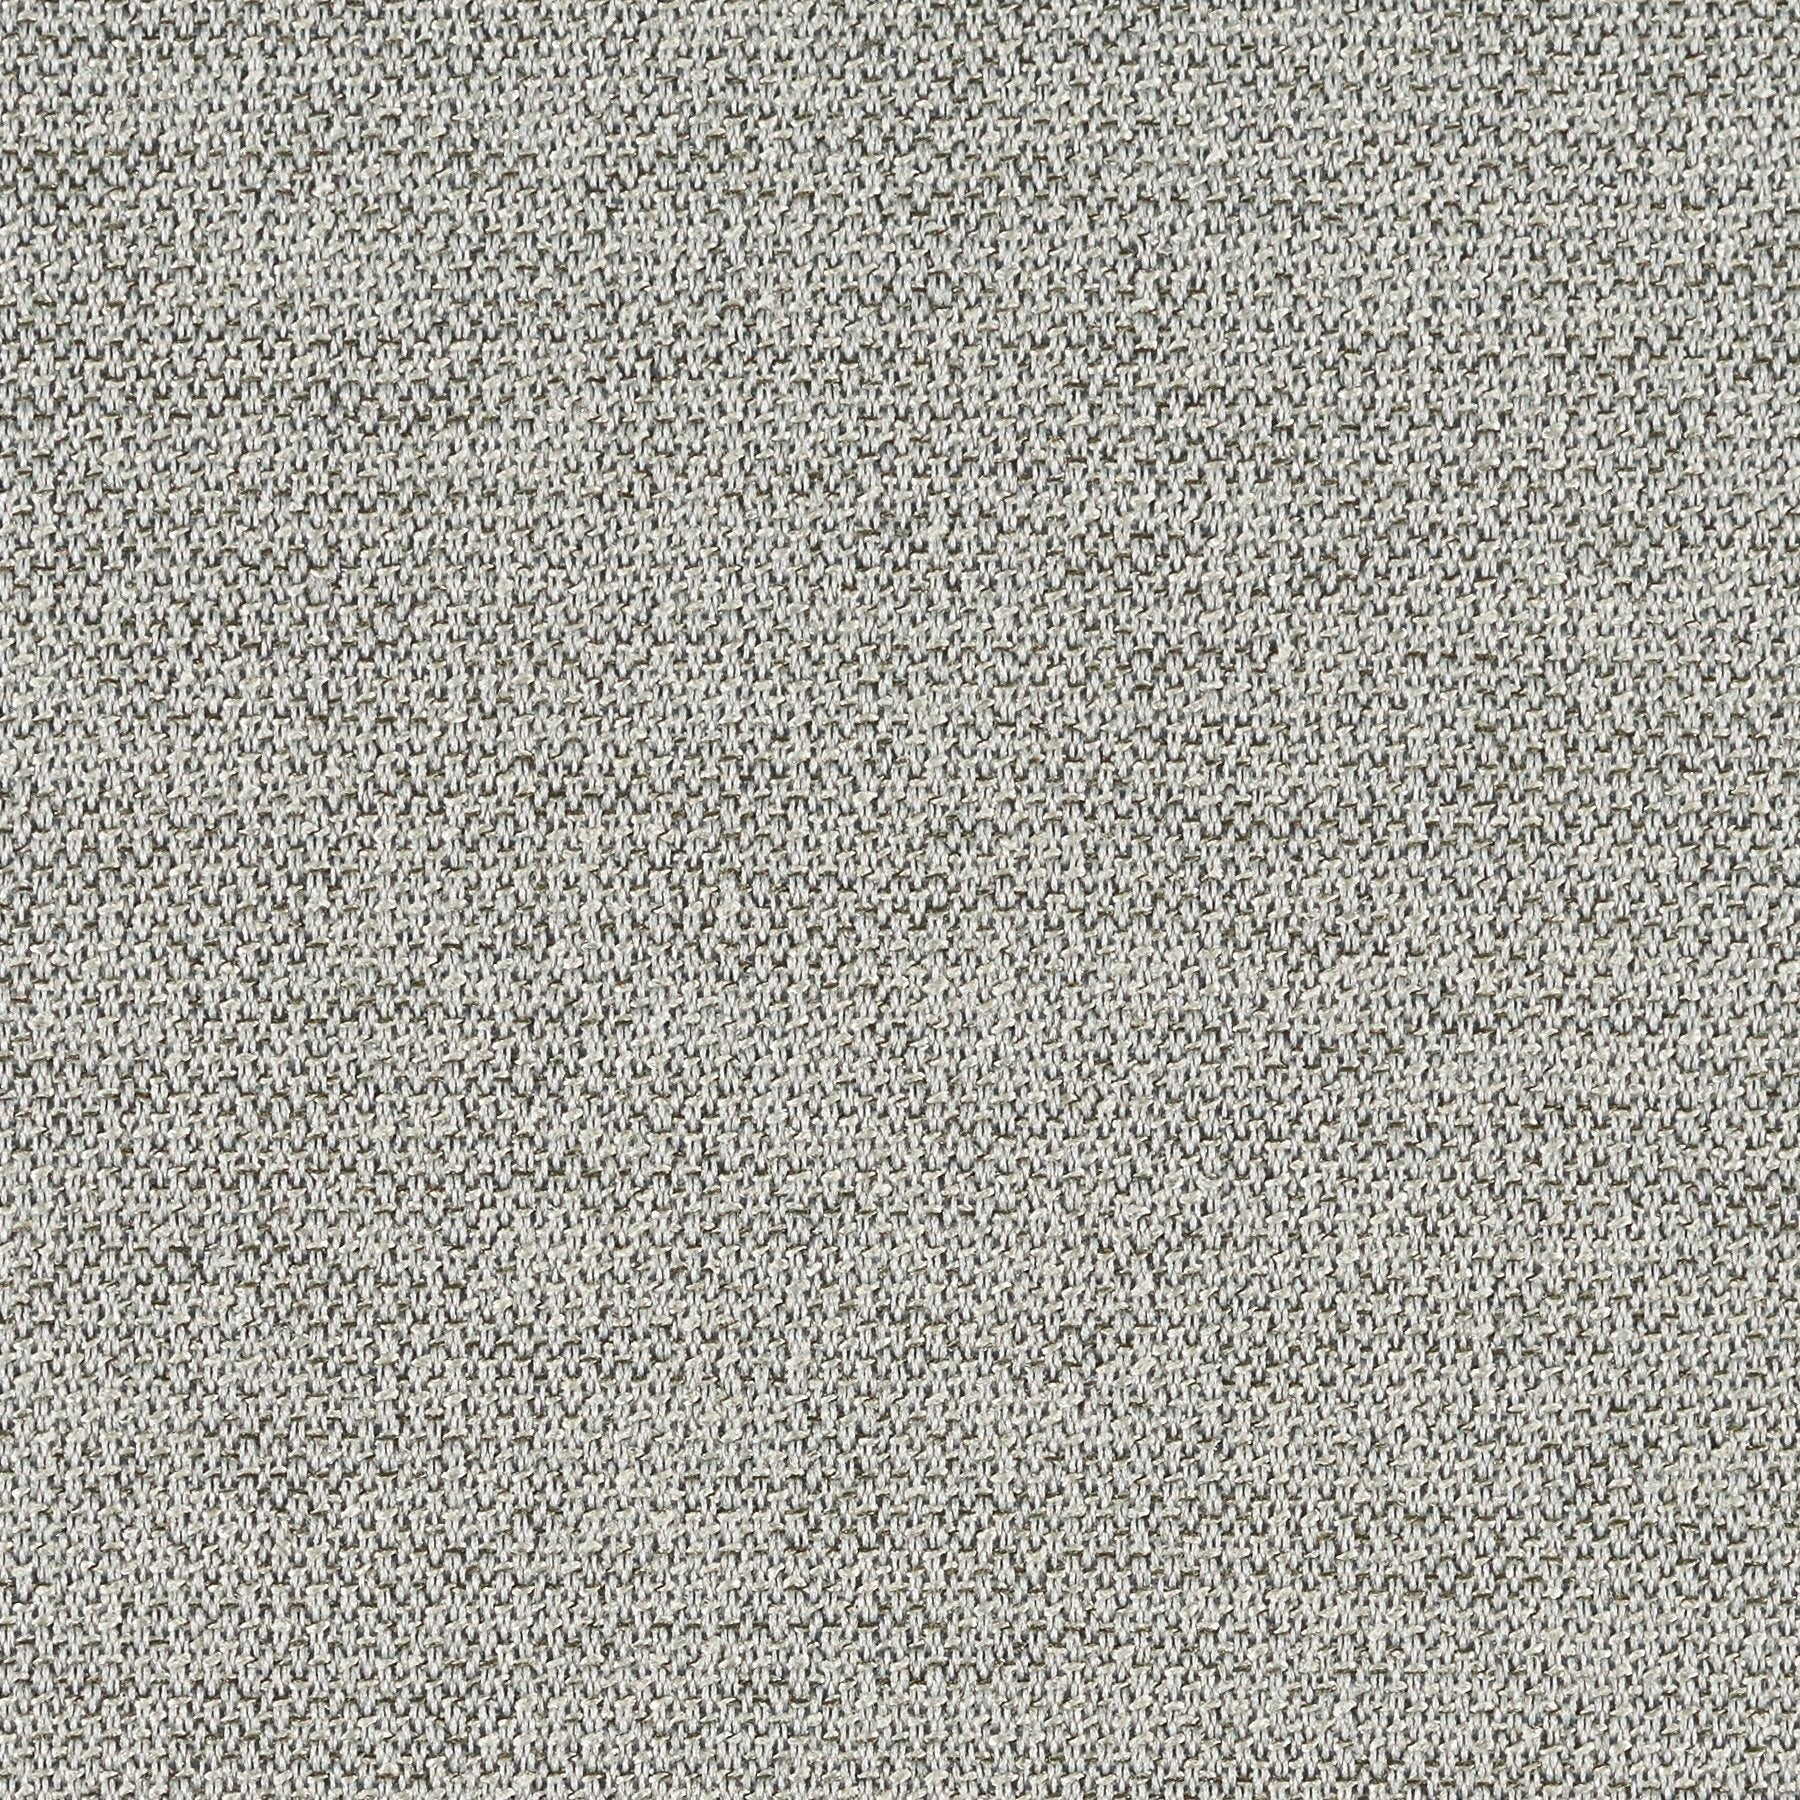 Silvery Strand|7012-03-T146|Silvery Strand 7012-03-T146